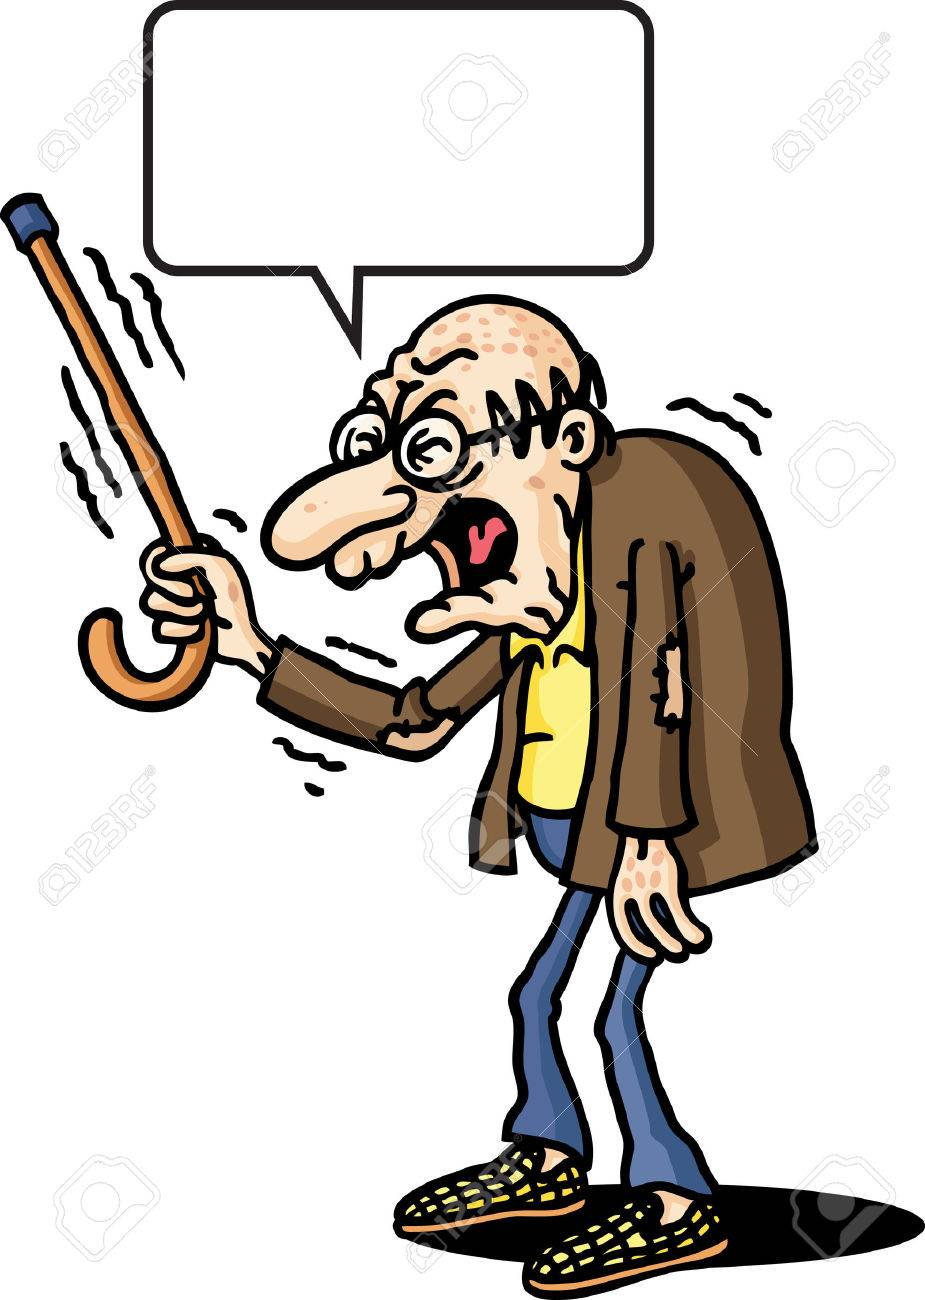 Grumpy old man clipart 7 » Clipart Station.